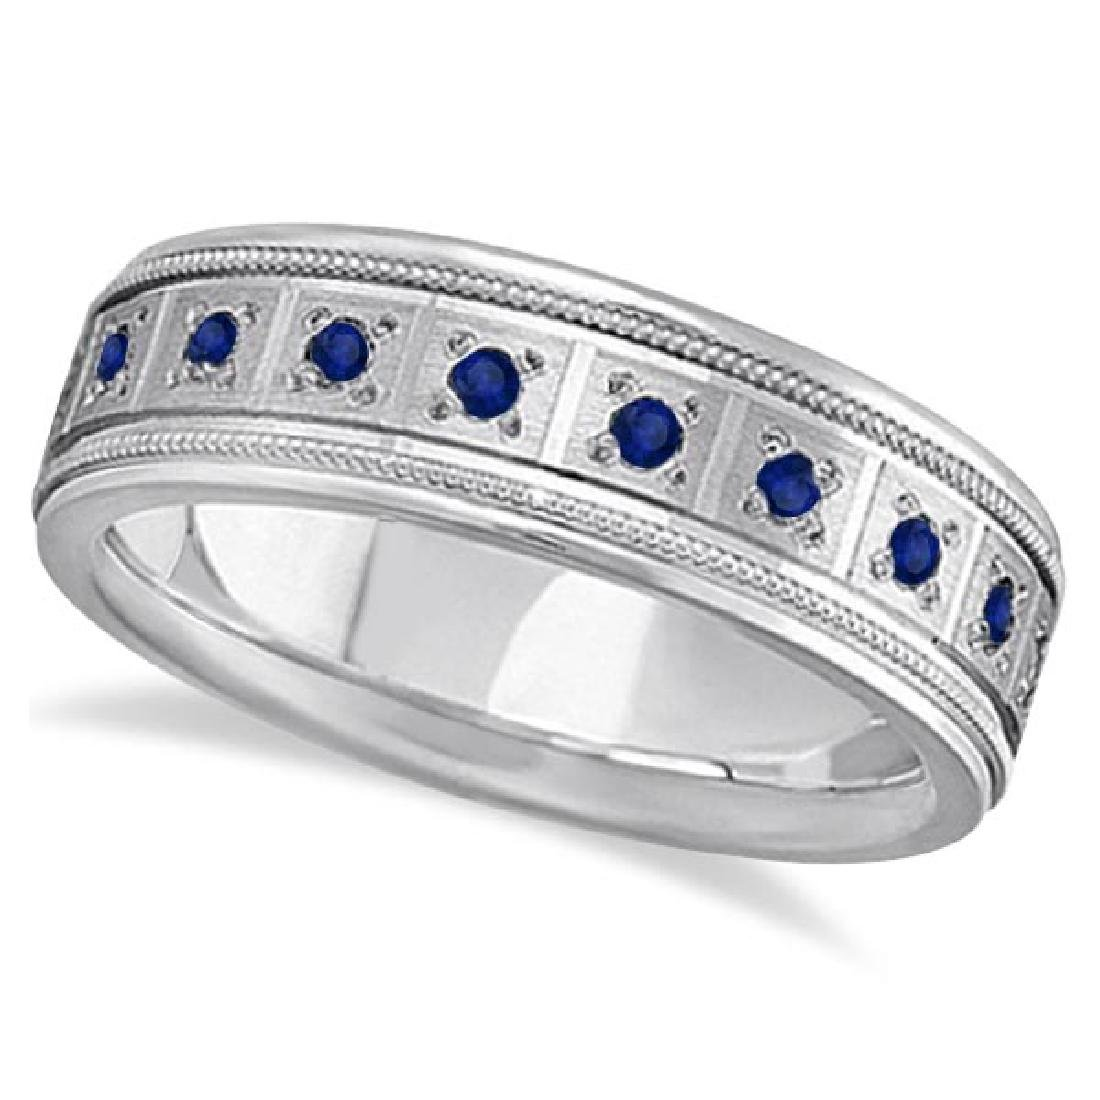 Blue Sapphire Ring for Men Wedding Band 14k White Gold